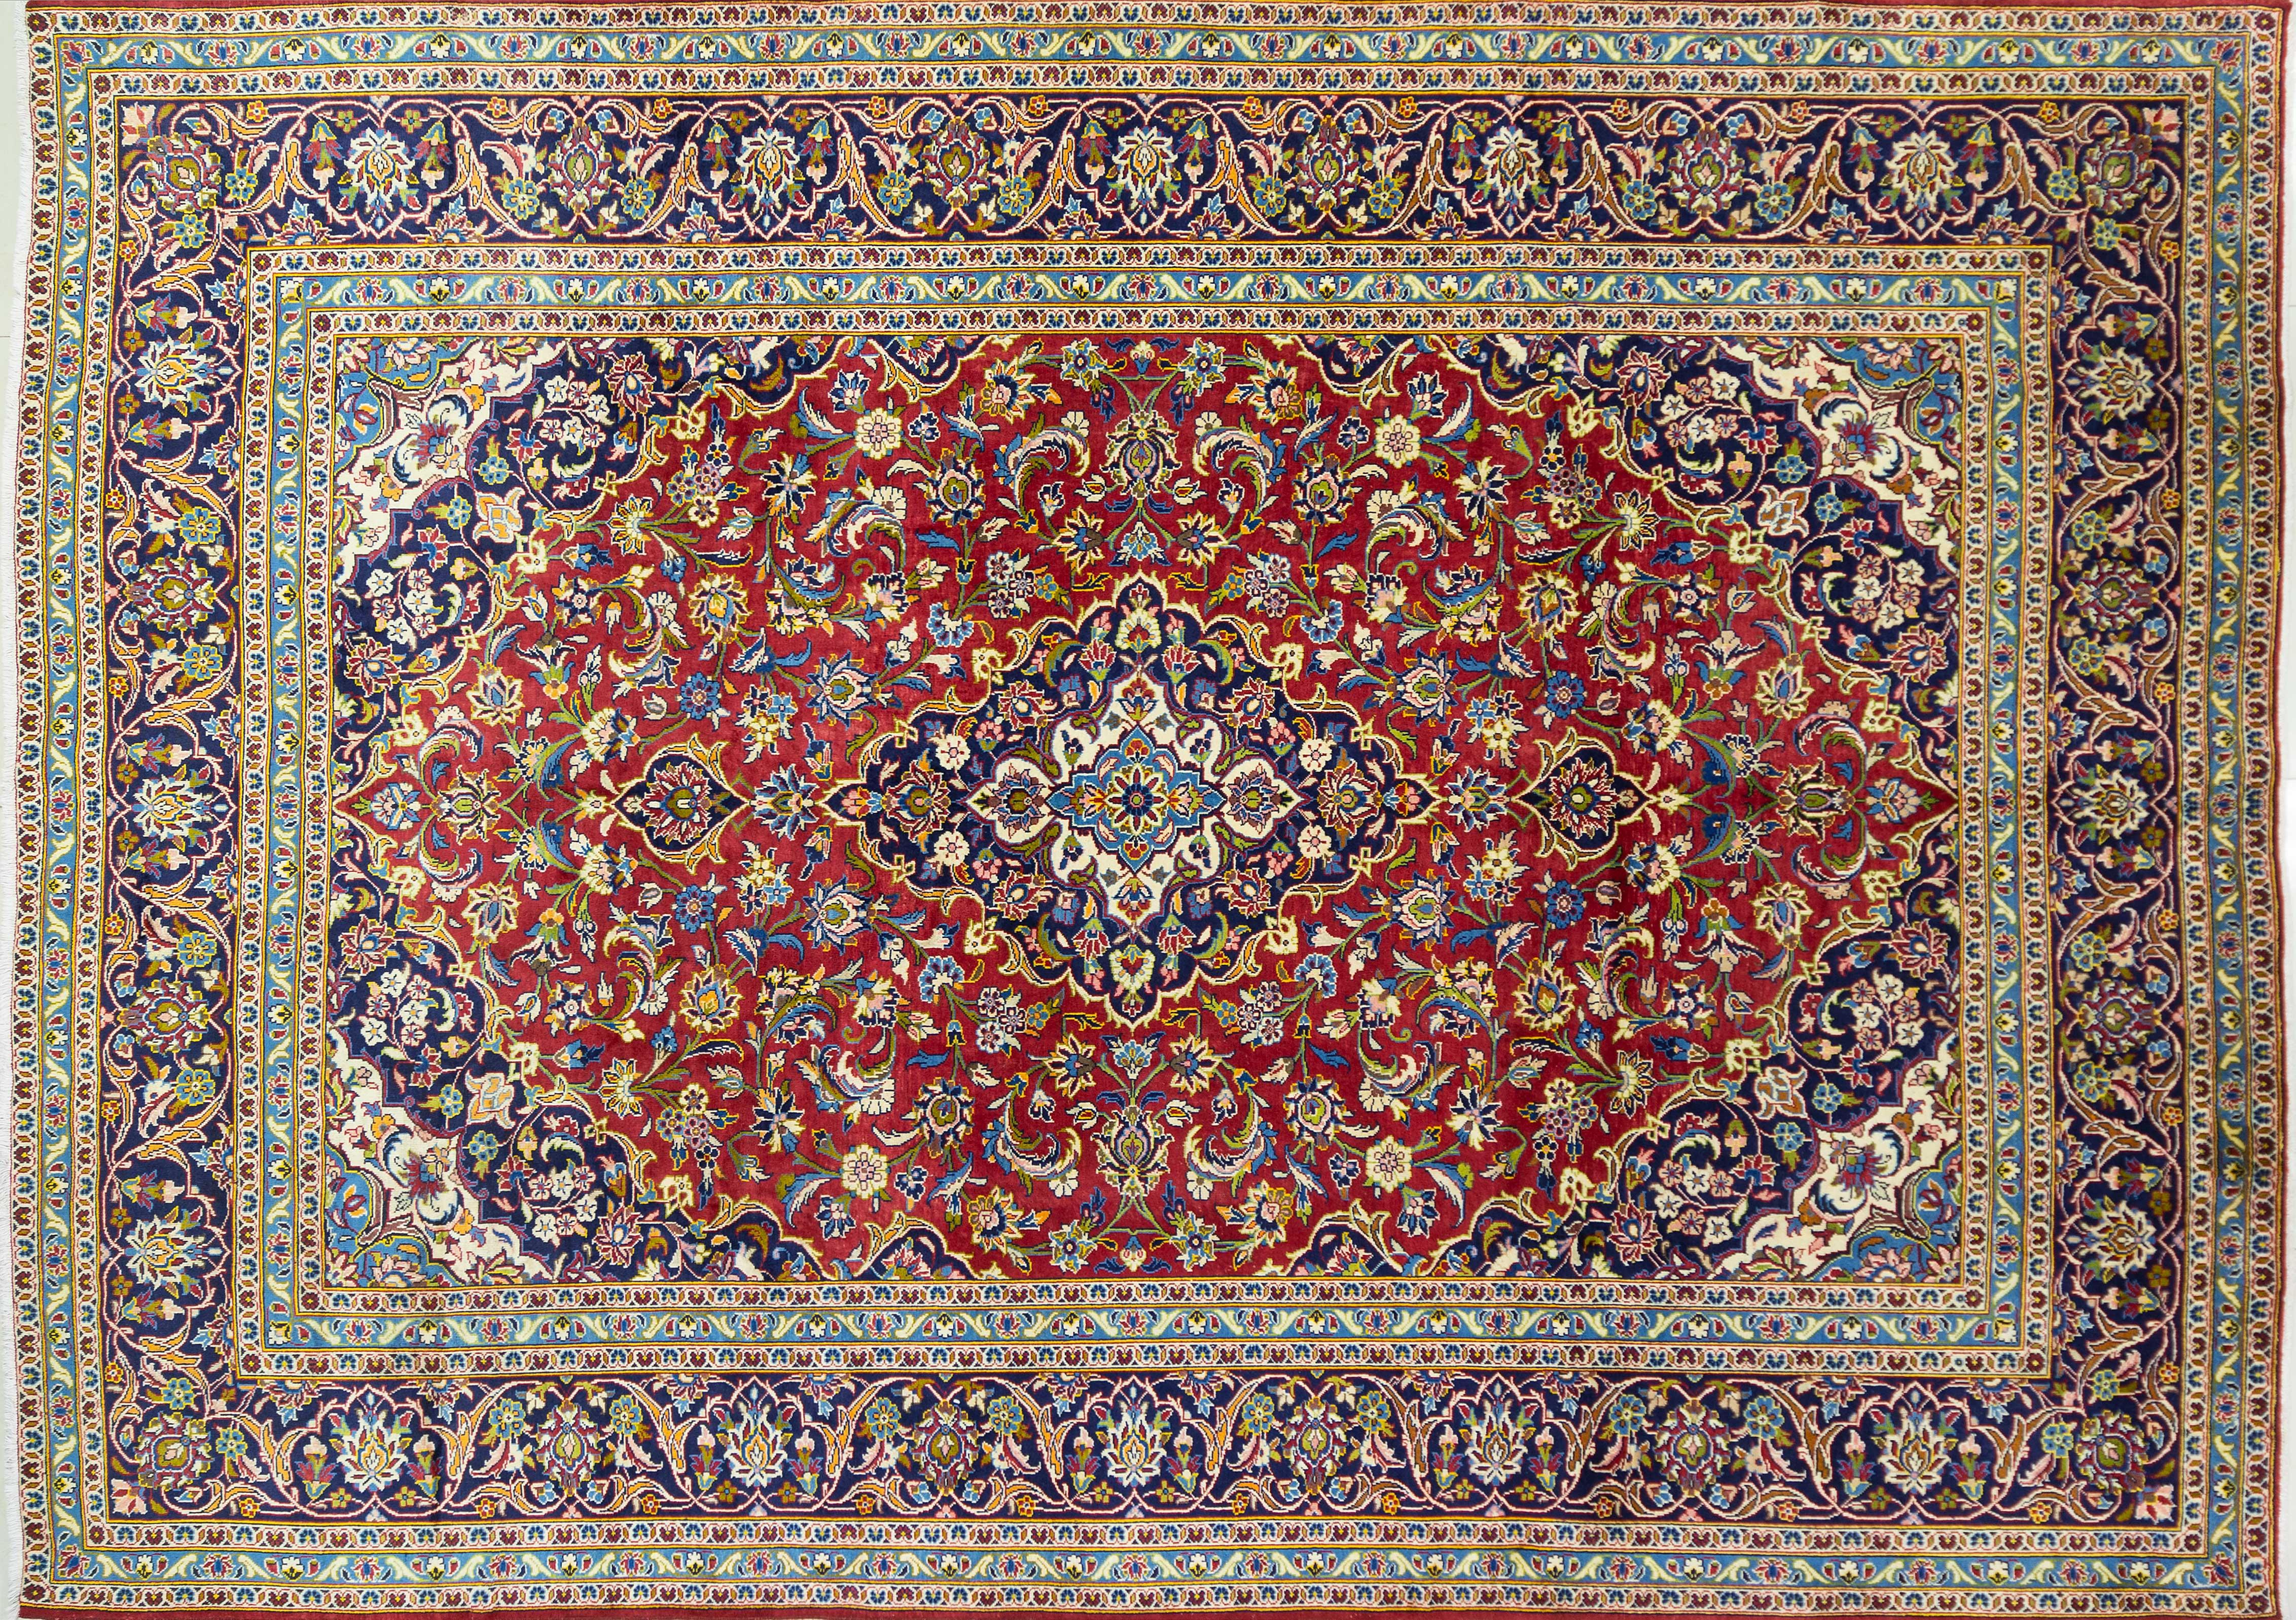 A Persian Hand Knotted Kashan Carpet, 390 x 283